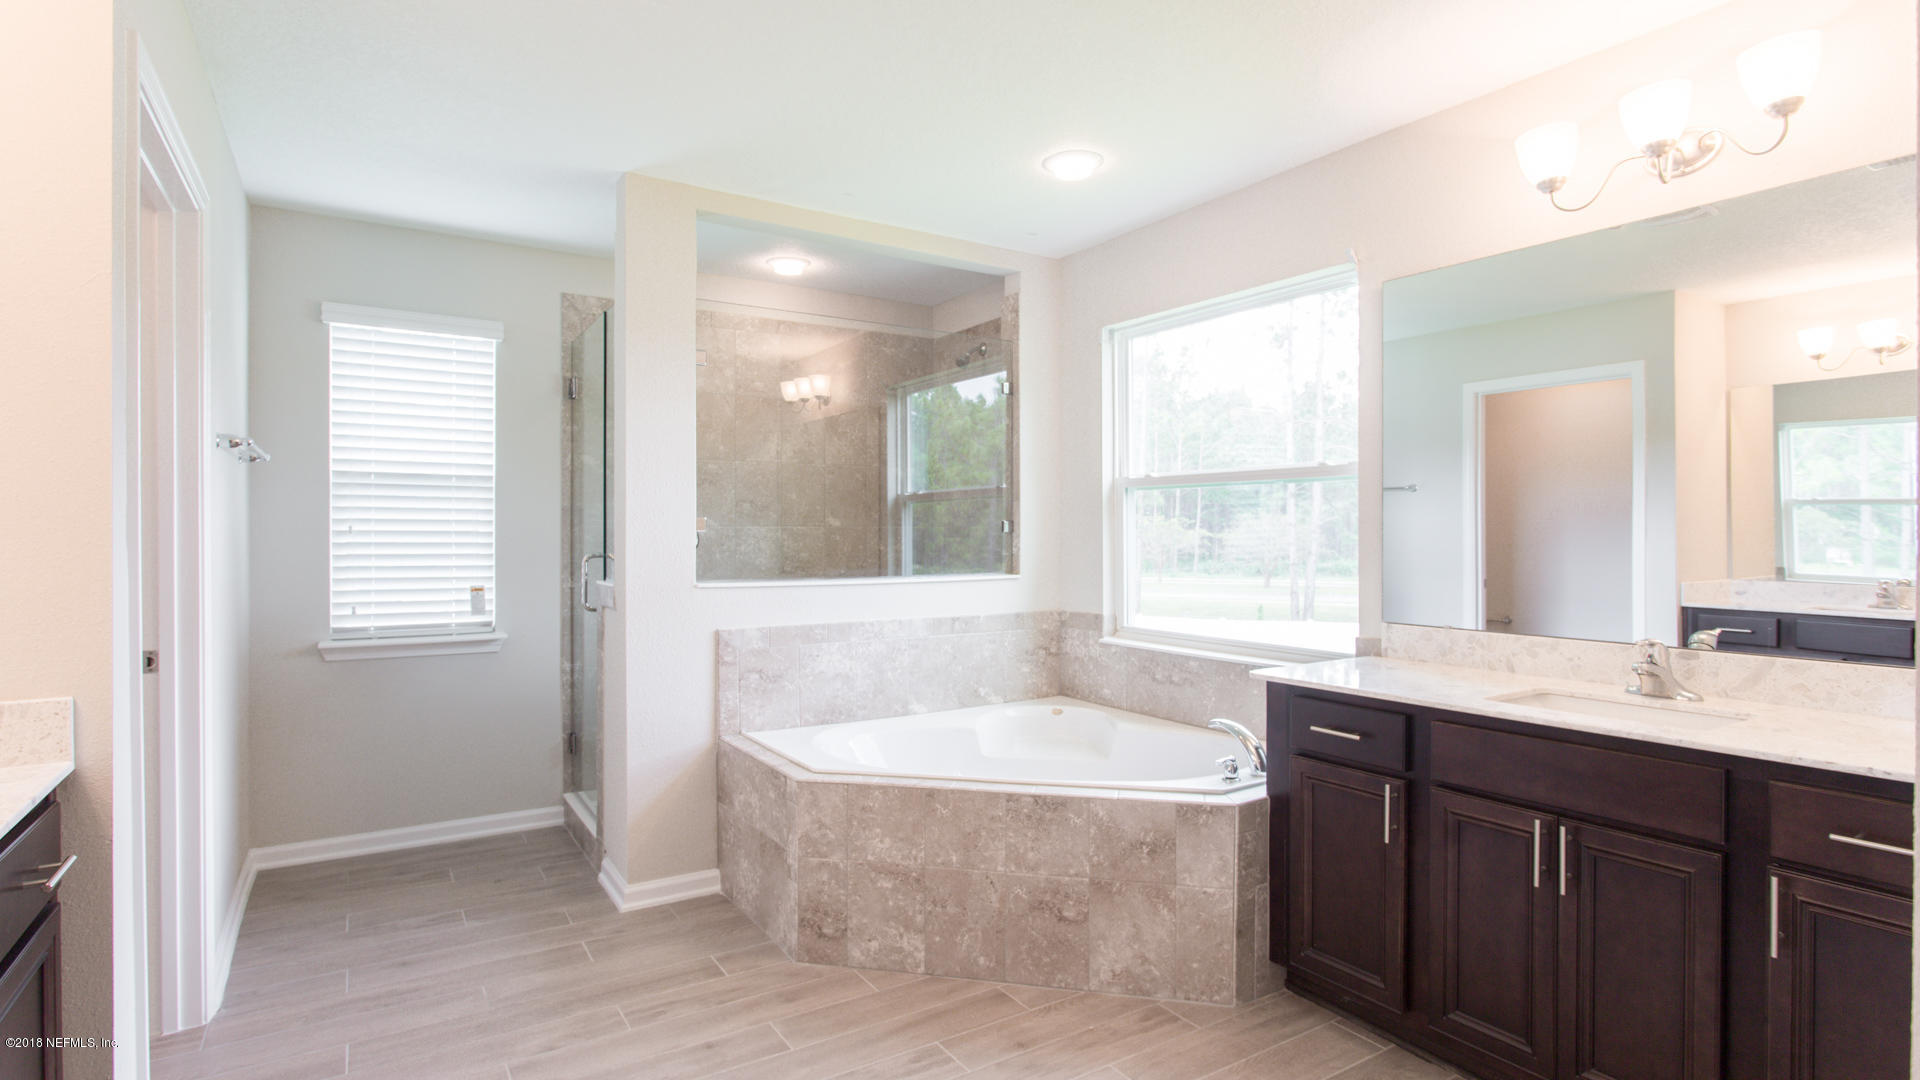 10166 BENGAL FOX, JACKSONVILLE, FLORIDA 32222, 5 Bedrooms Bedrooms, ,3 BathroomsBathrooms,Residential - single family,For sale,BENGAL FOX,921991